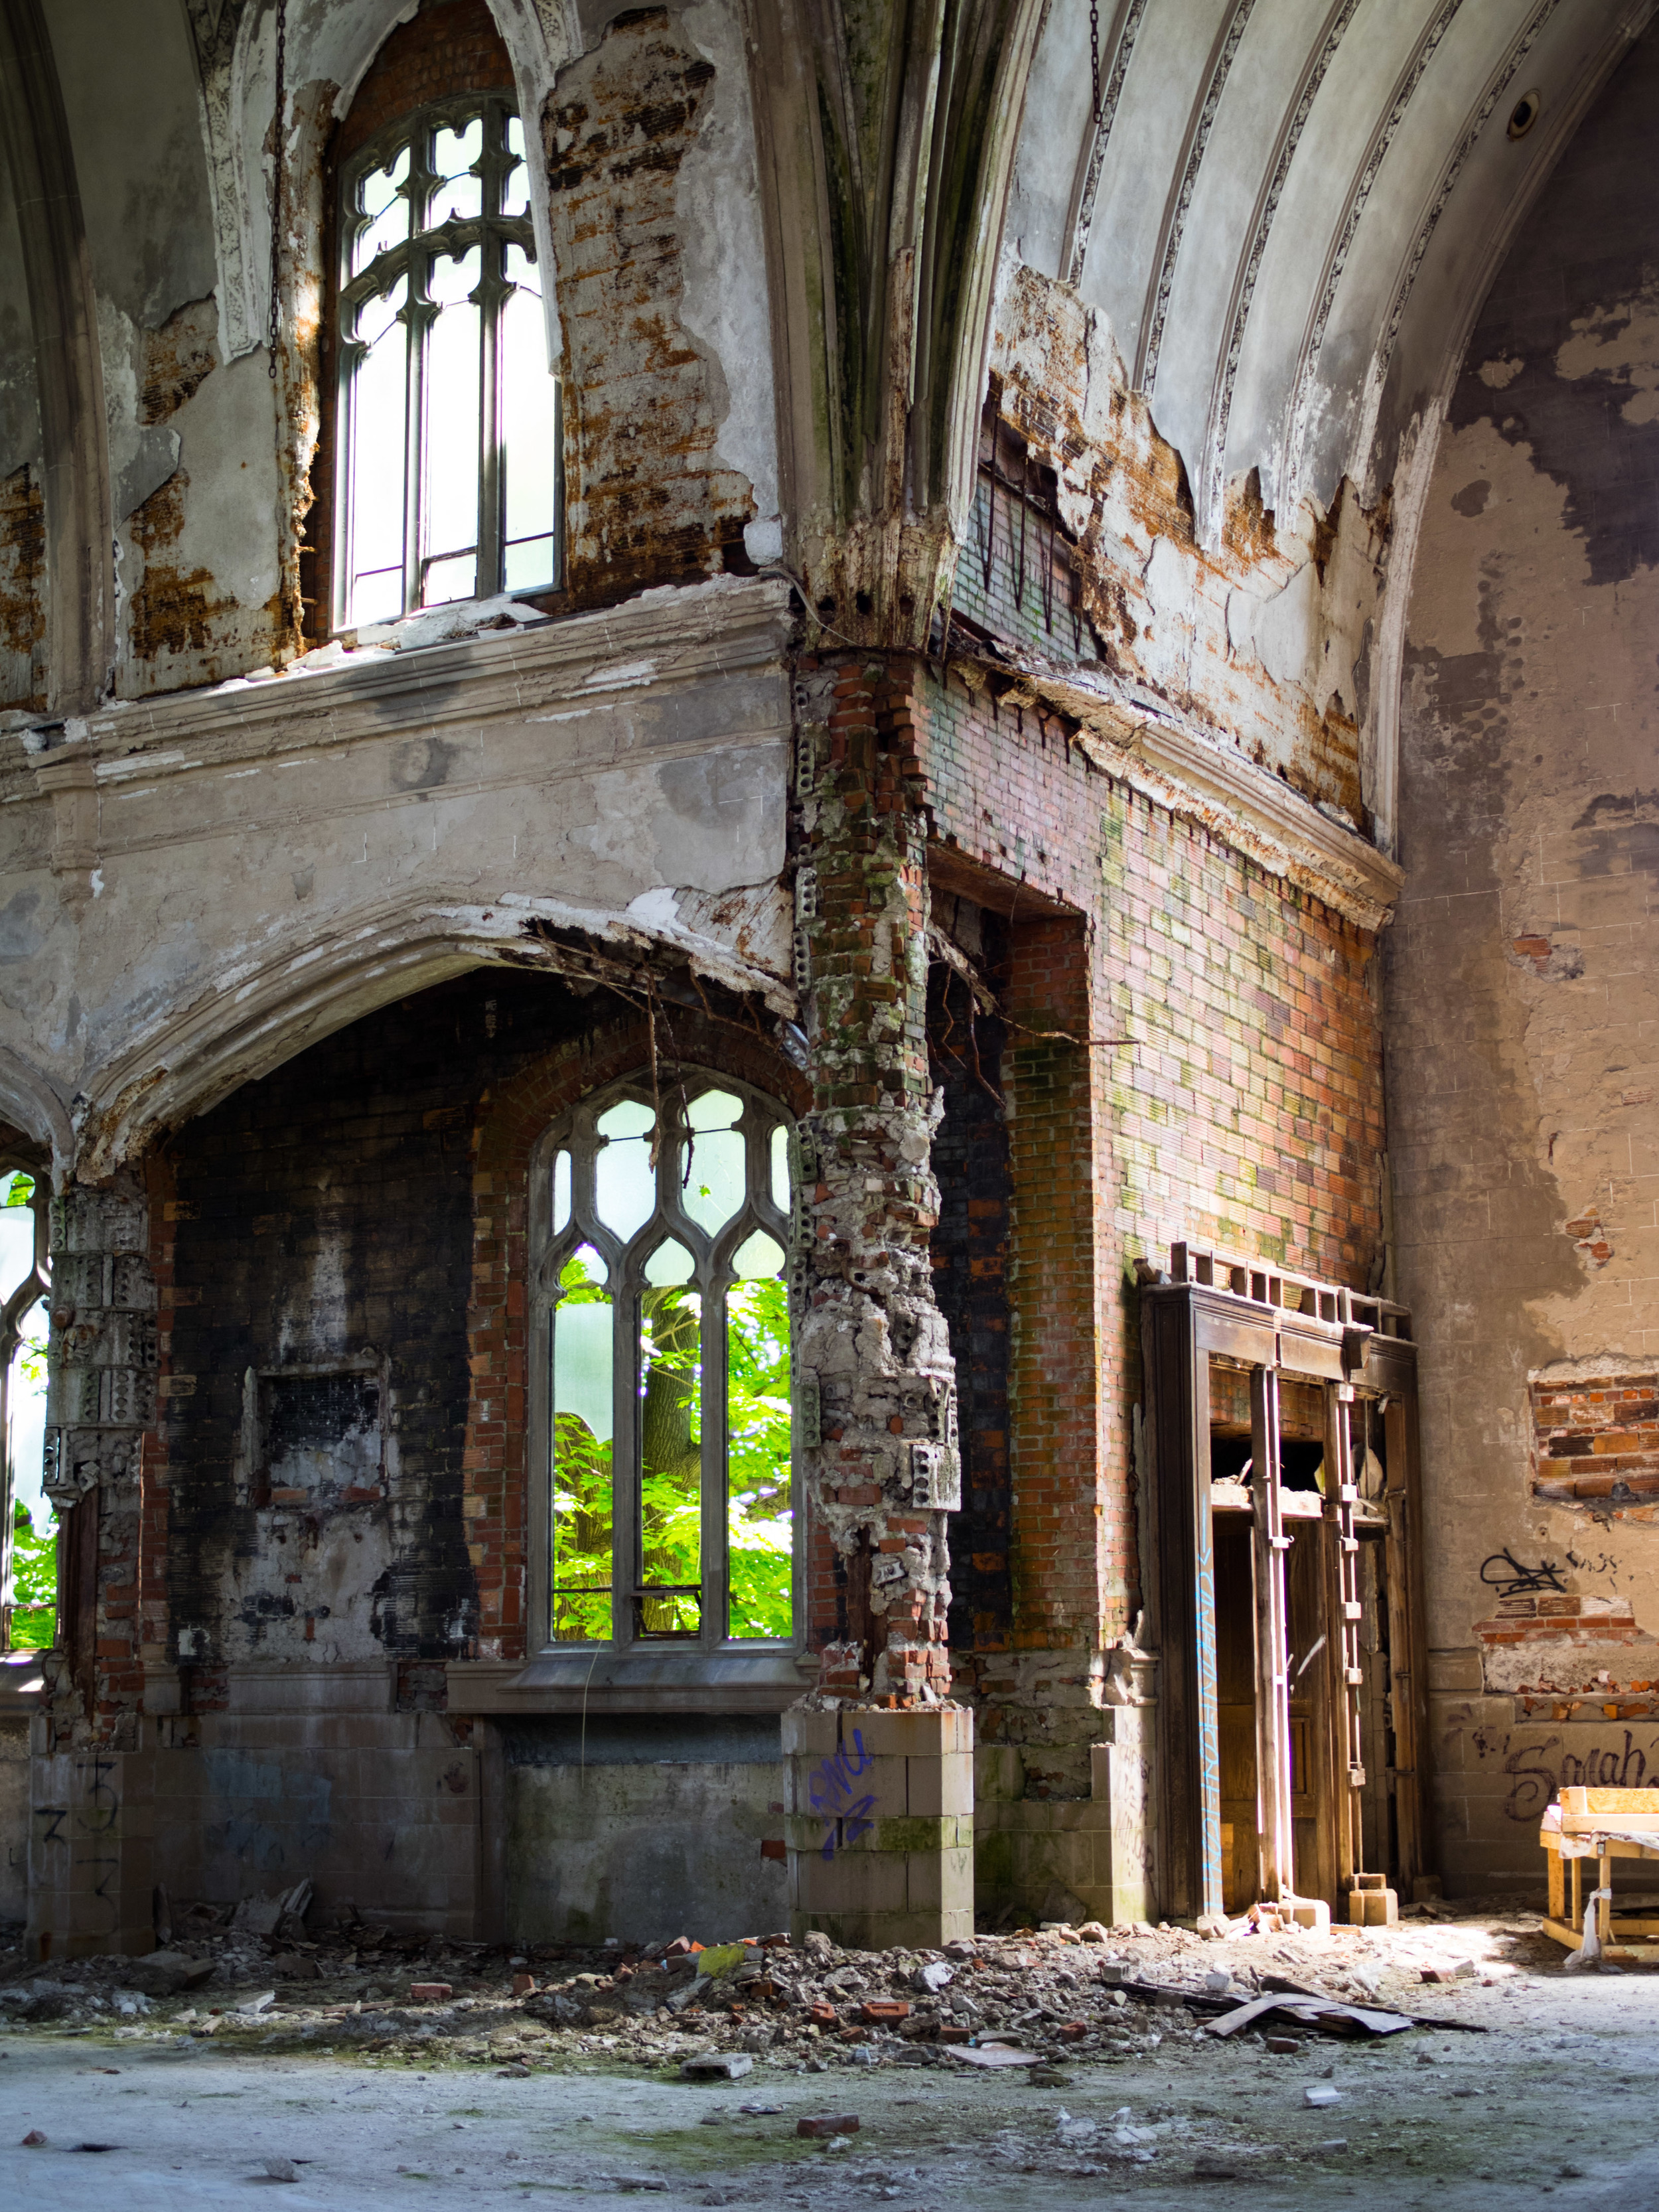 The supporting columns at St. Agnes are crumbling to the point where the building will collapse upon itself leaving only memories of its once great presence.